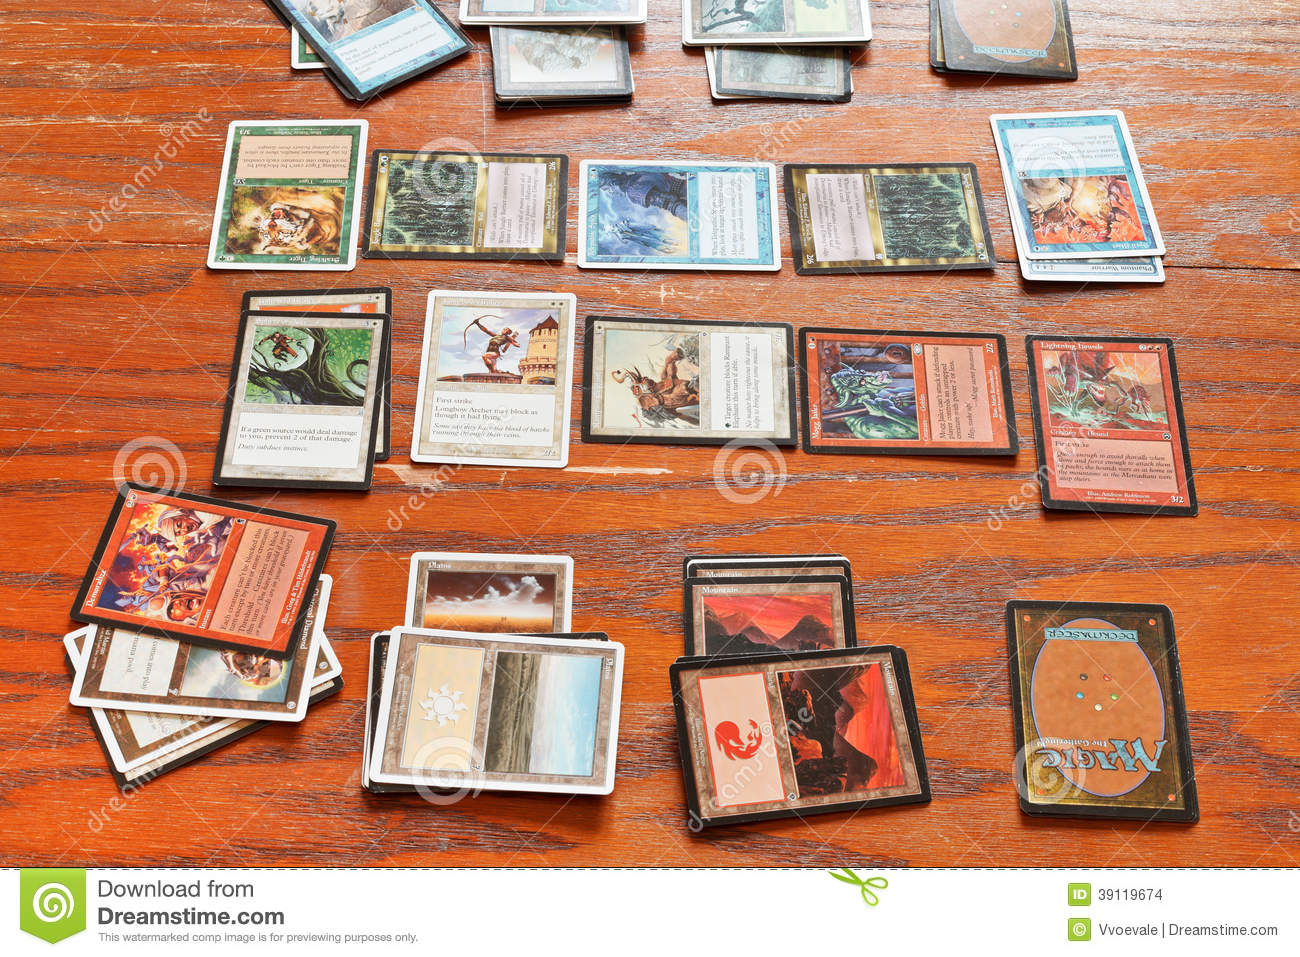 Playing field of card game magic the gathering editorial stock image image of tournament game - Magic the gathering game table ...